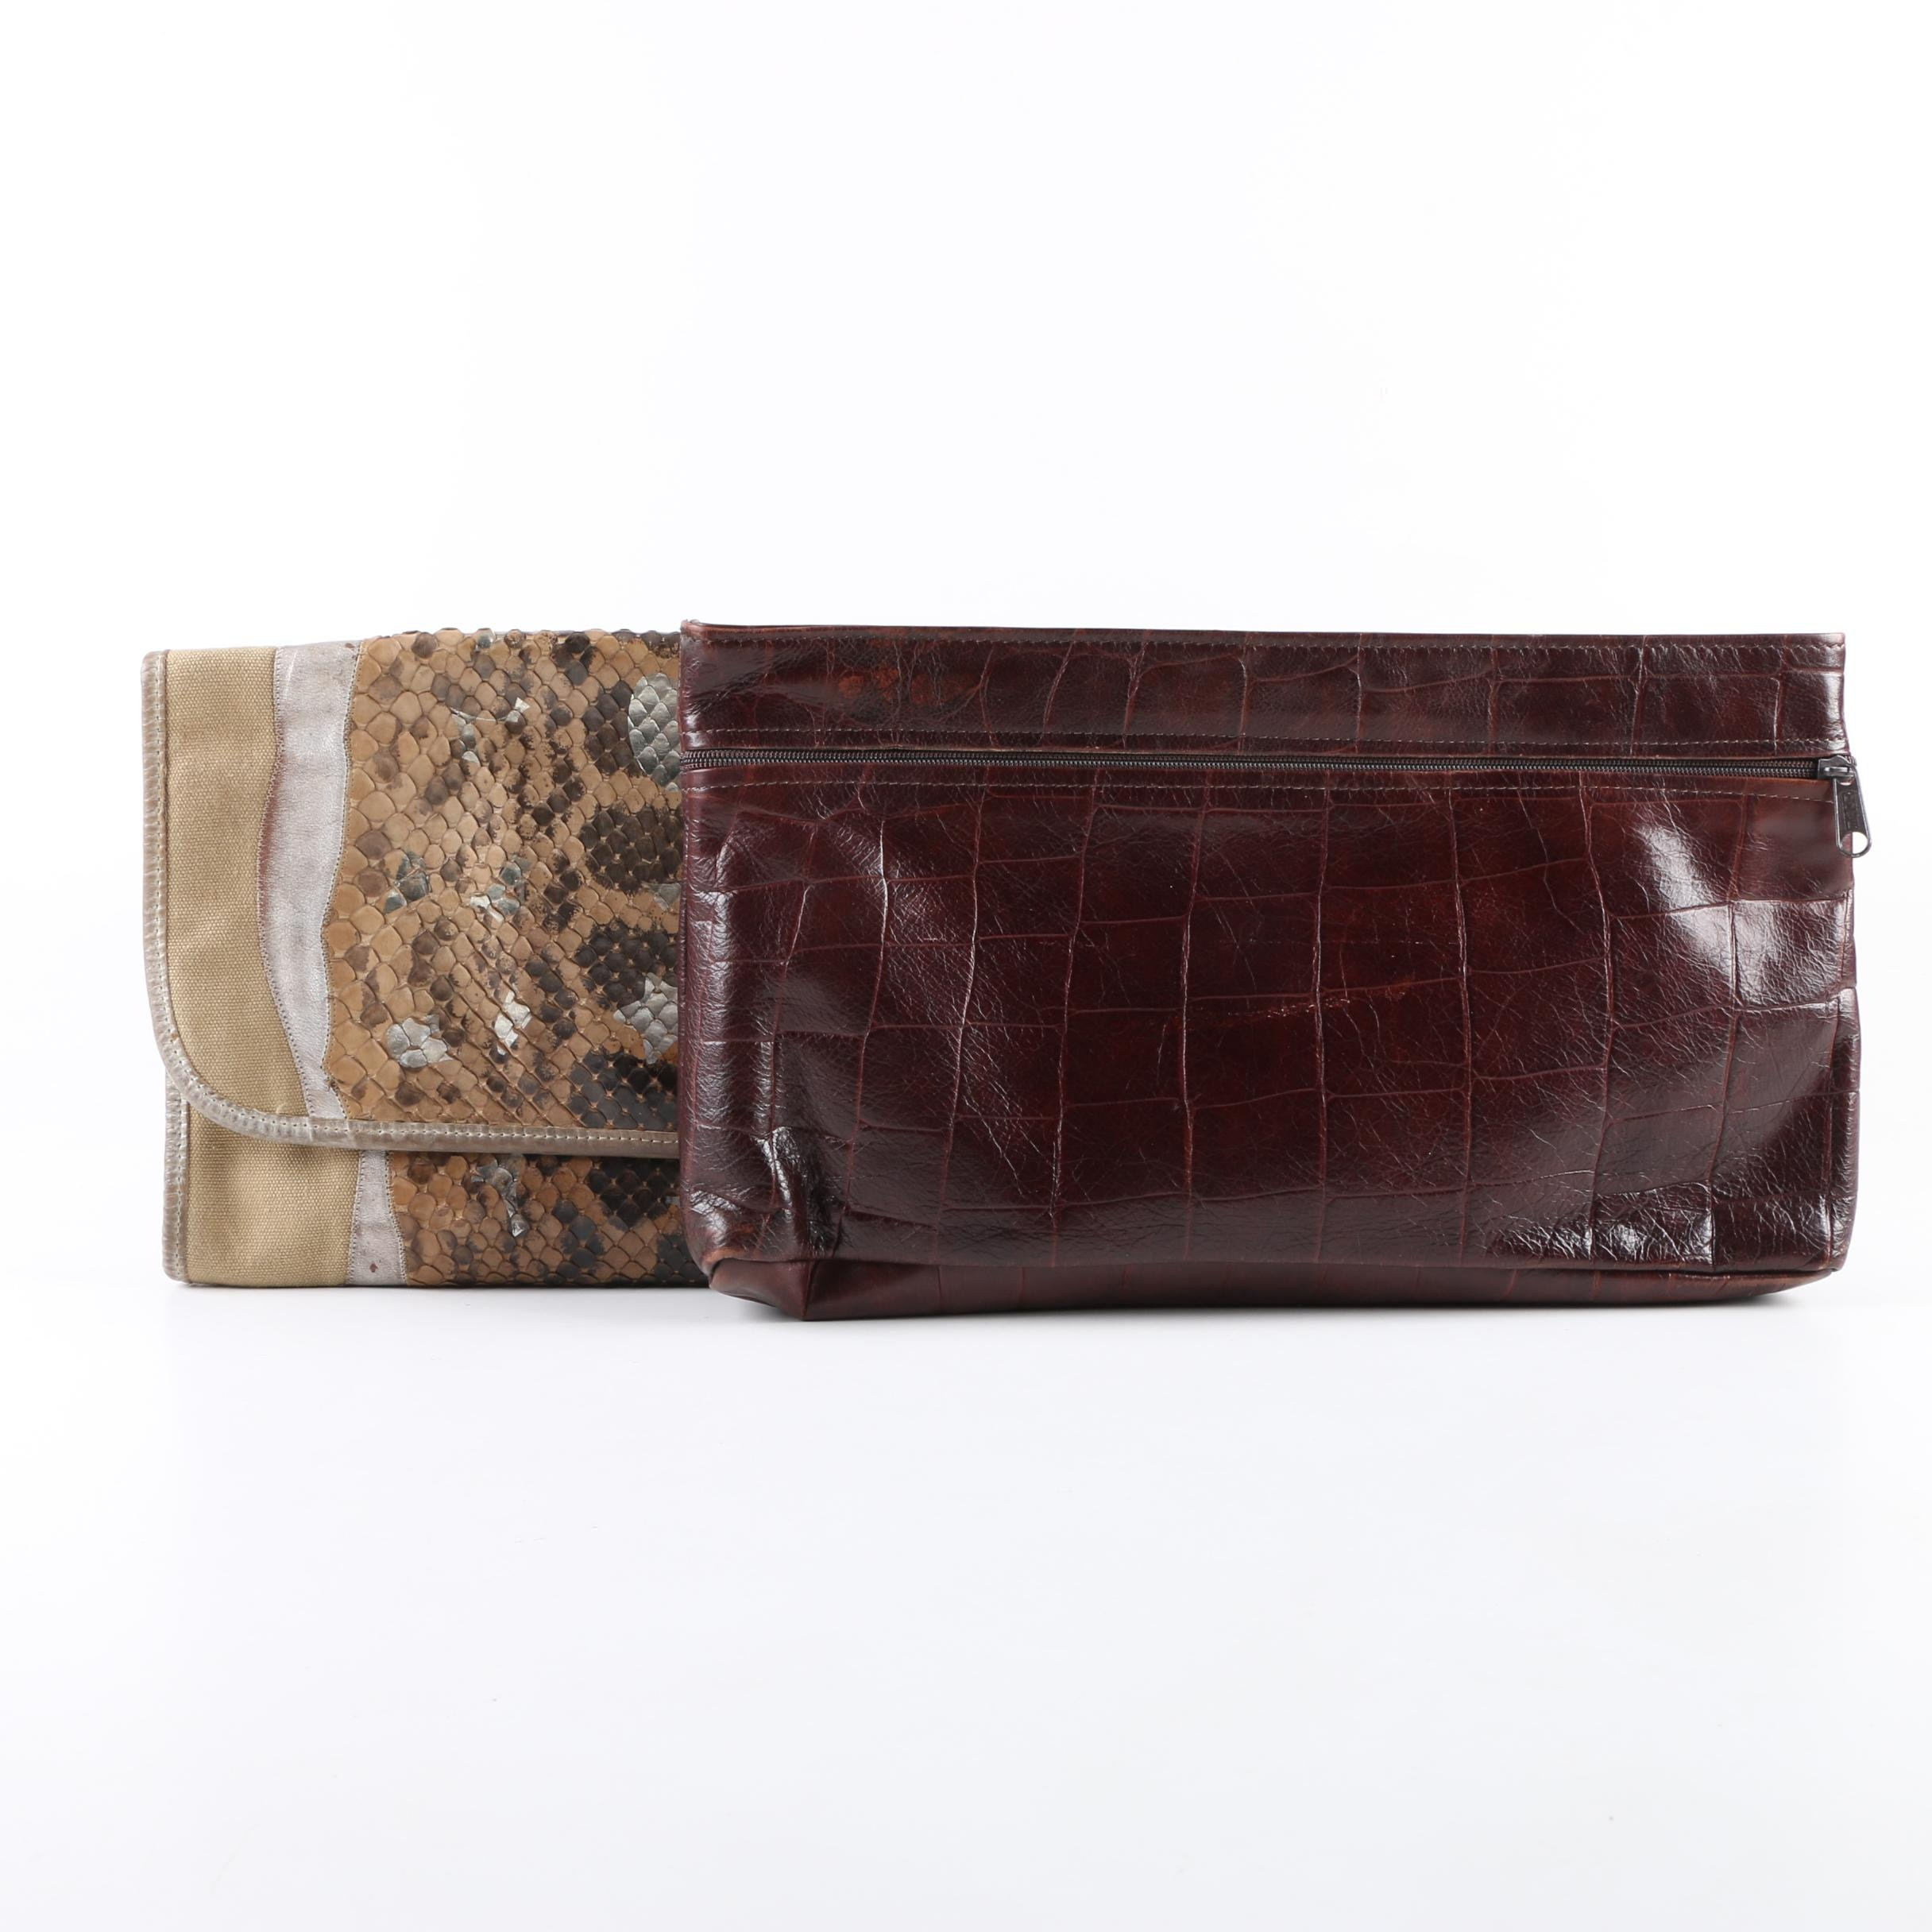 1980s Vintage Carlos Falchi Python and Crocodile Embossed Leather Clutches